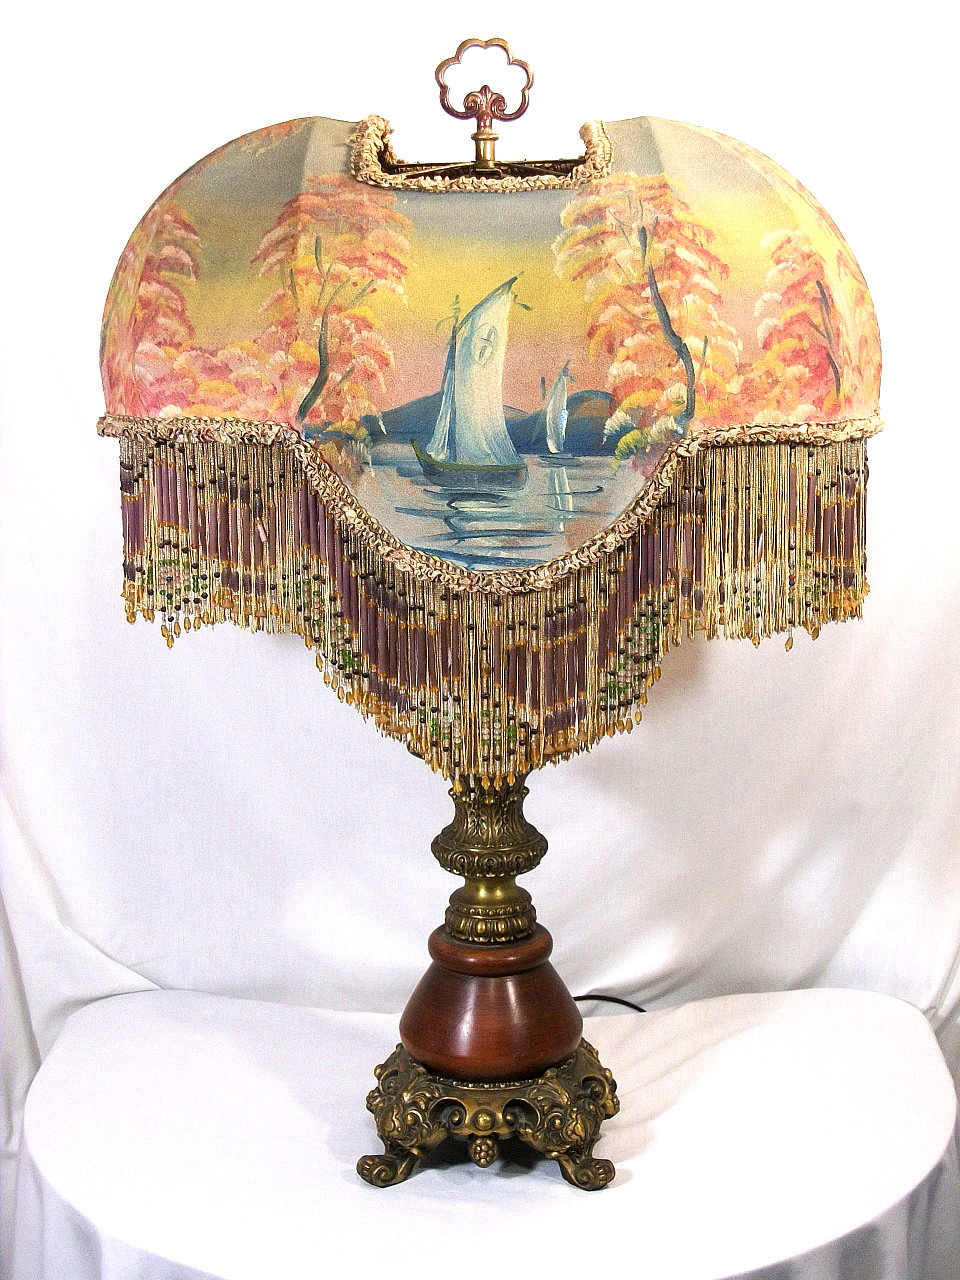 RARE ANTIQUE ORIGINAL VICTORIAN SHADE TABLE LAMP BEADED